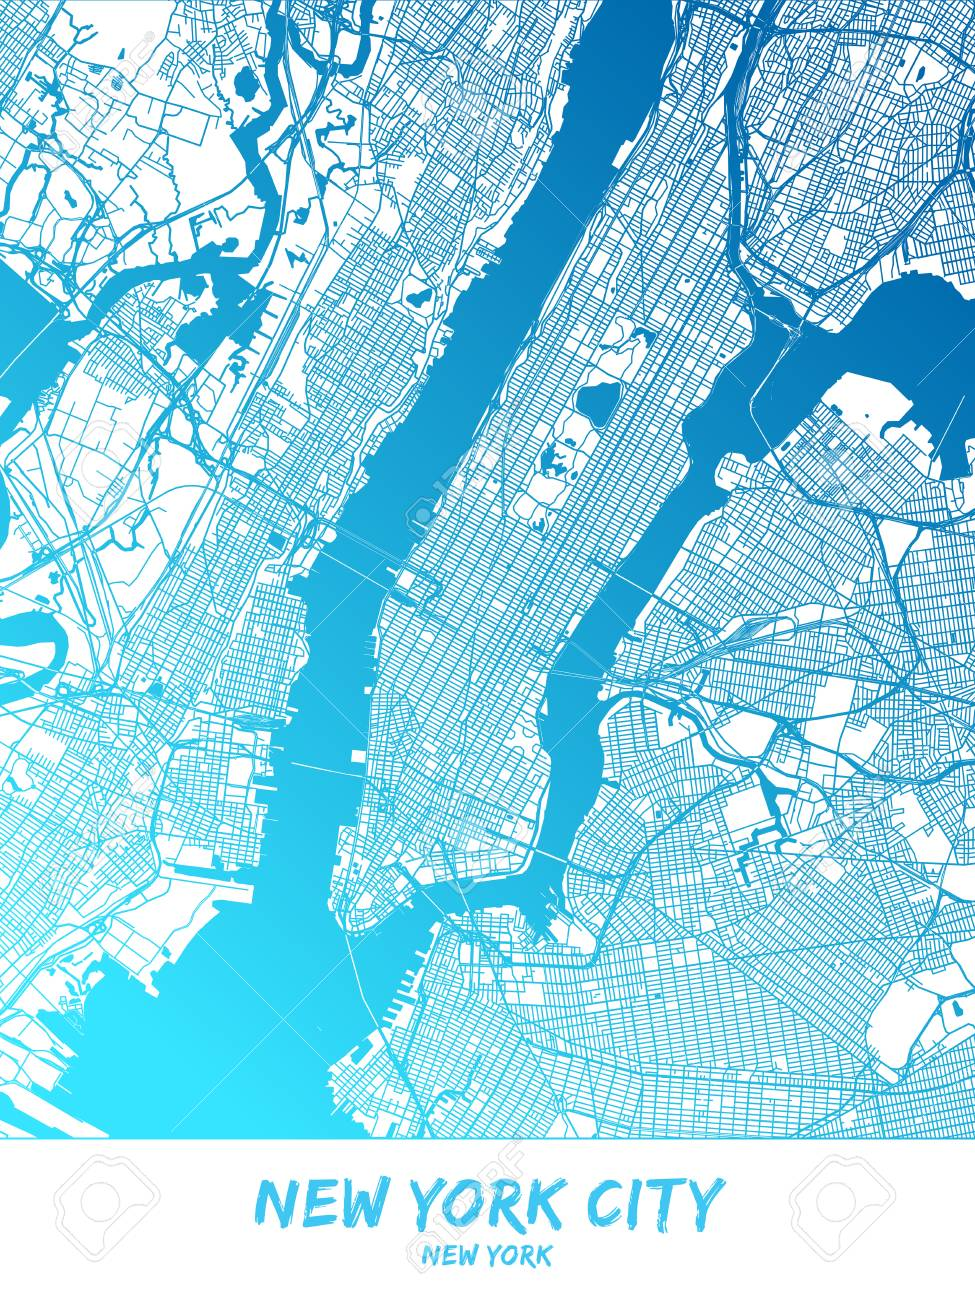 New York City Downtown And Surroundings Map In Blue Shaded Version Downtown New York Map on